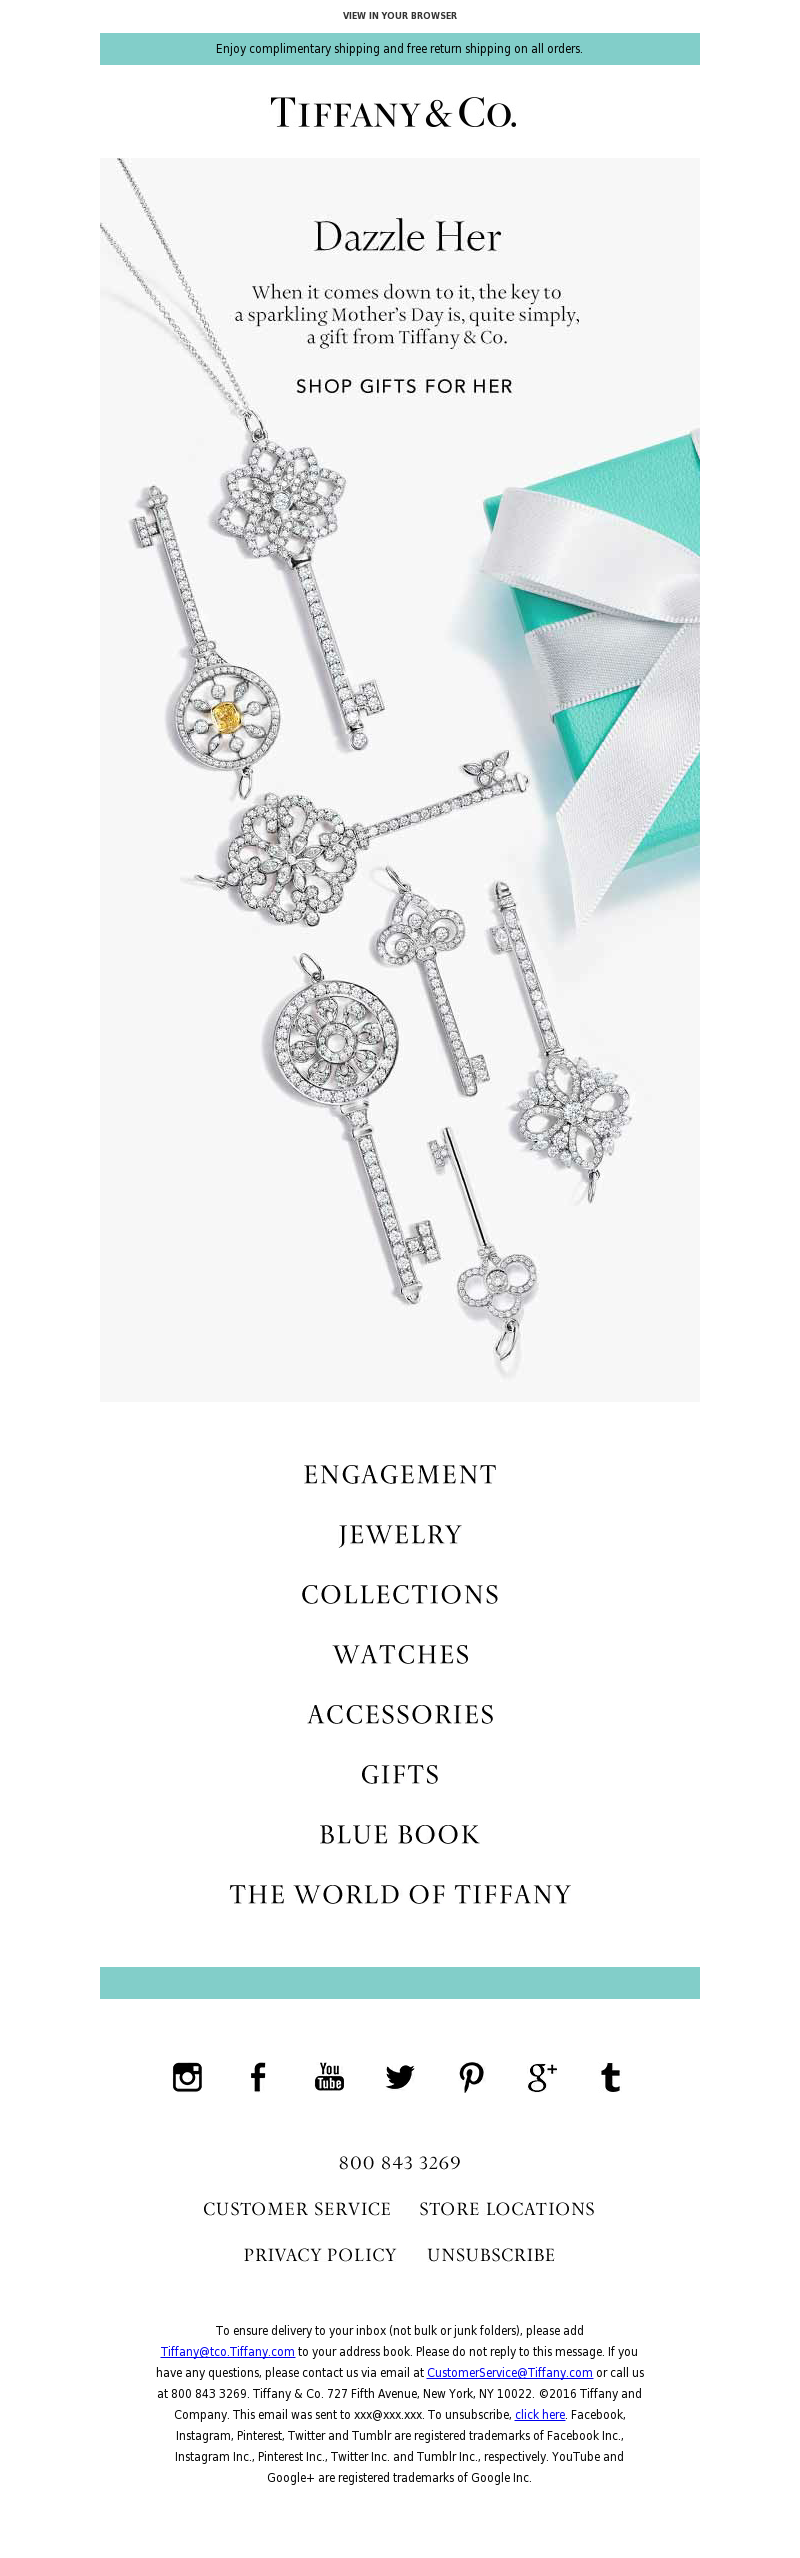 Tiffany & Co. - The Key to Her Heart | A Tiffany Mother's Day